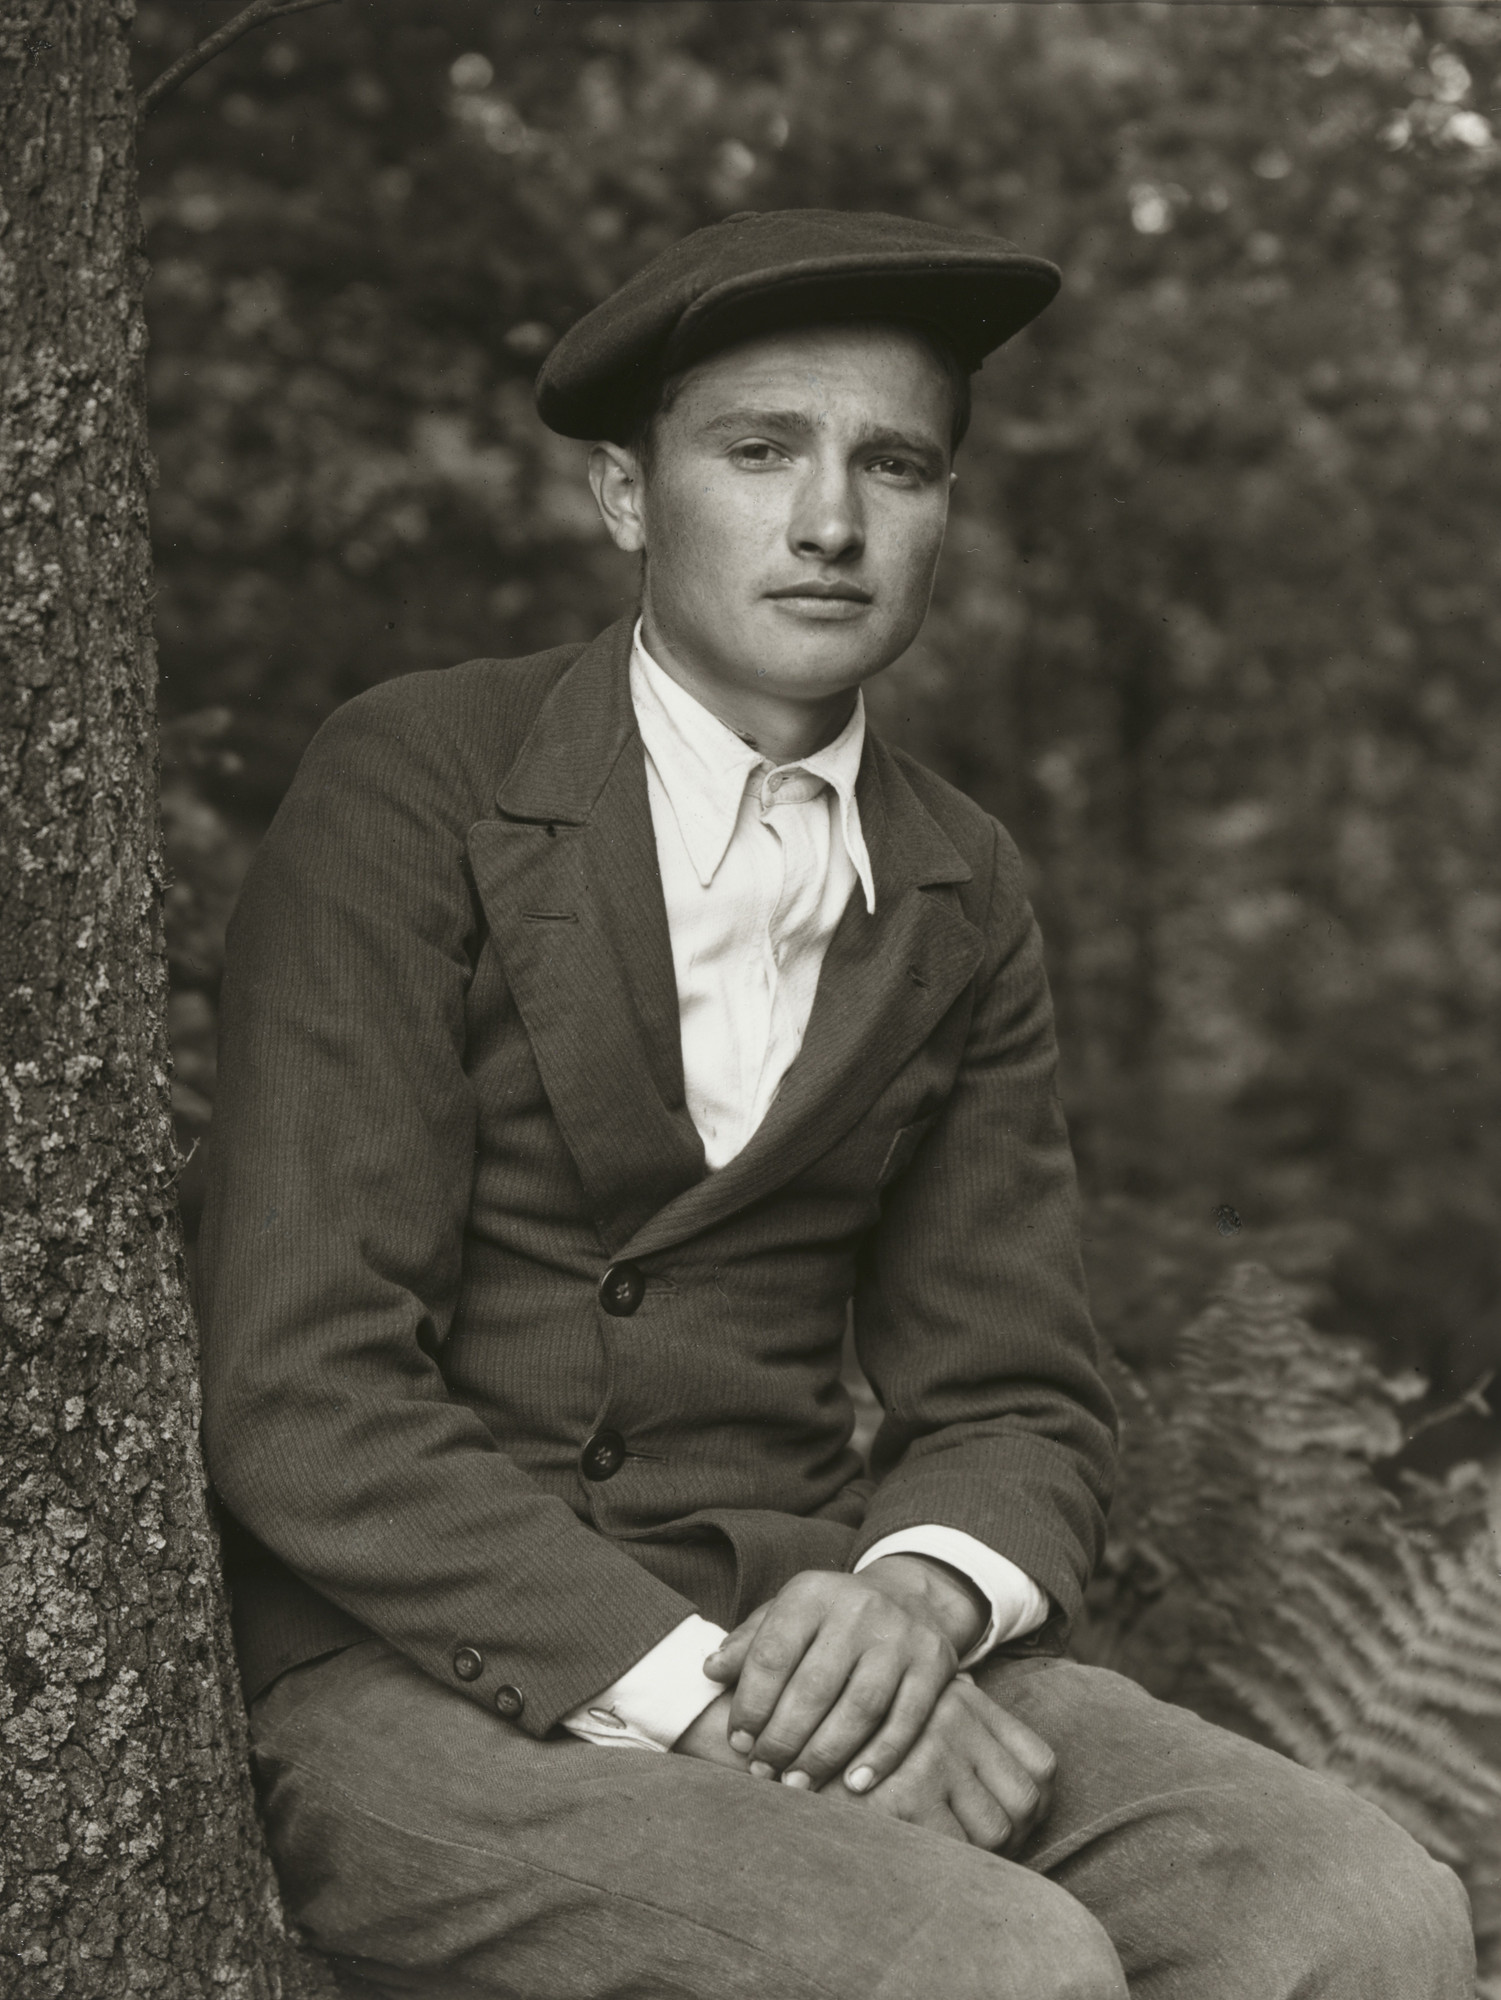 August Sander. Foreign Worker. 1941-45